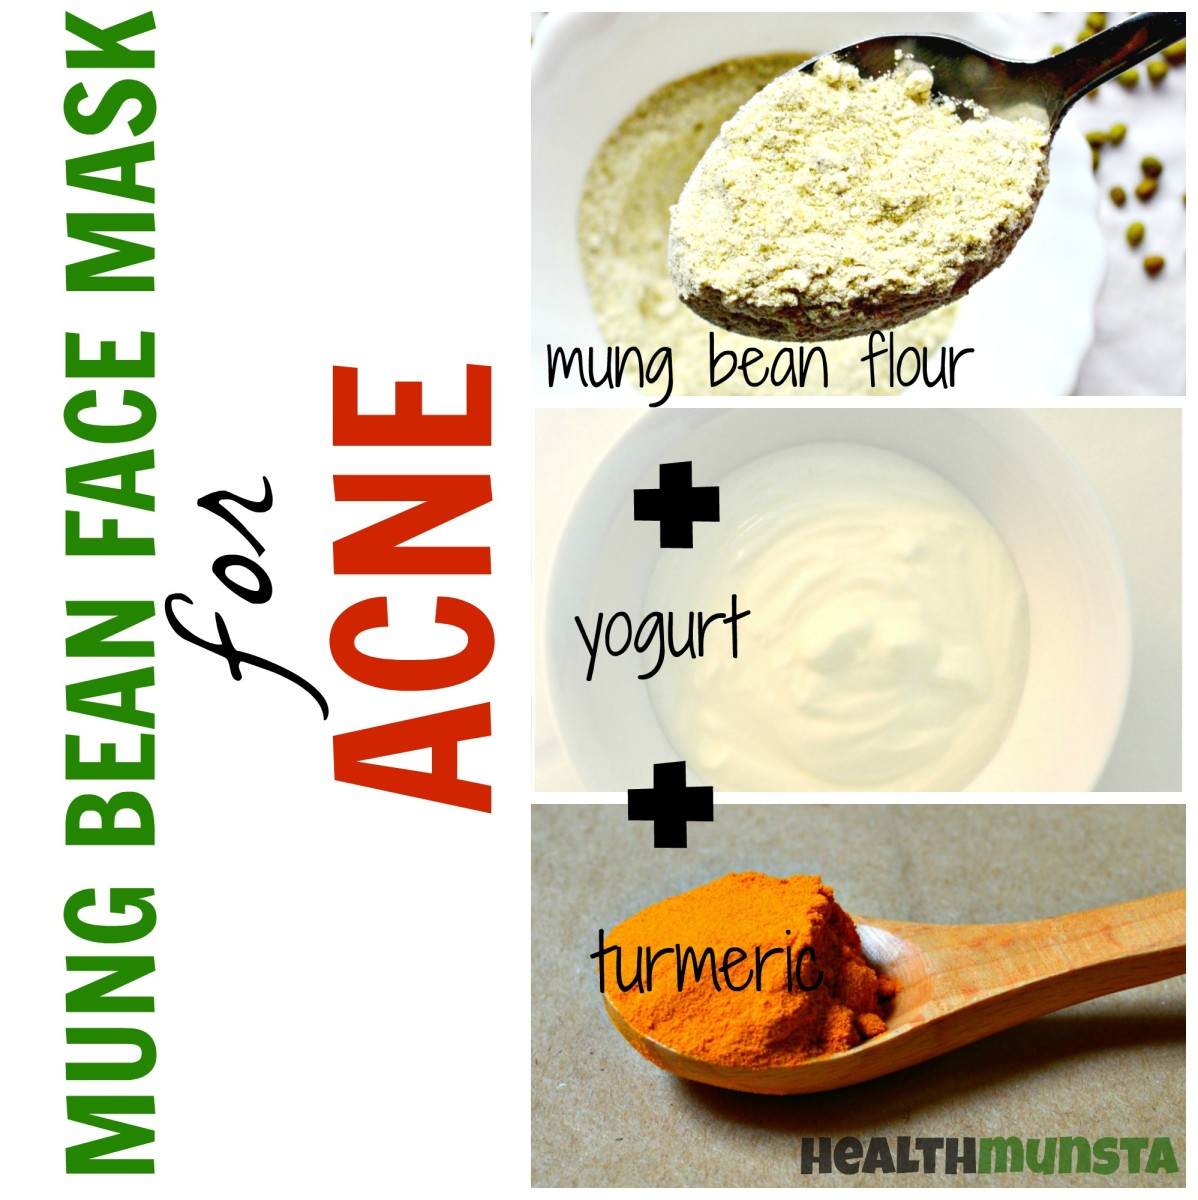 With antibacterial & anti-inflammatory ingredients, this mung bean face mask will soothe & heal irritated acne